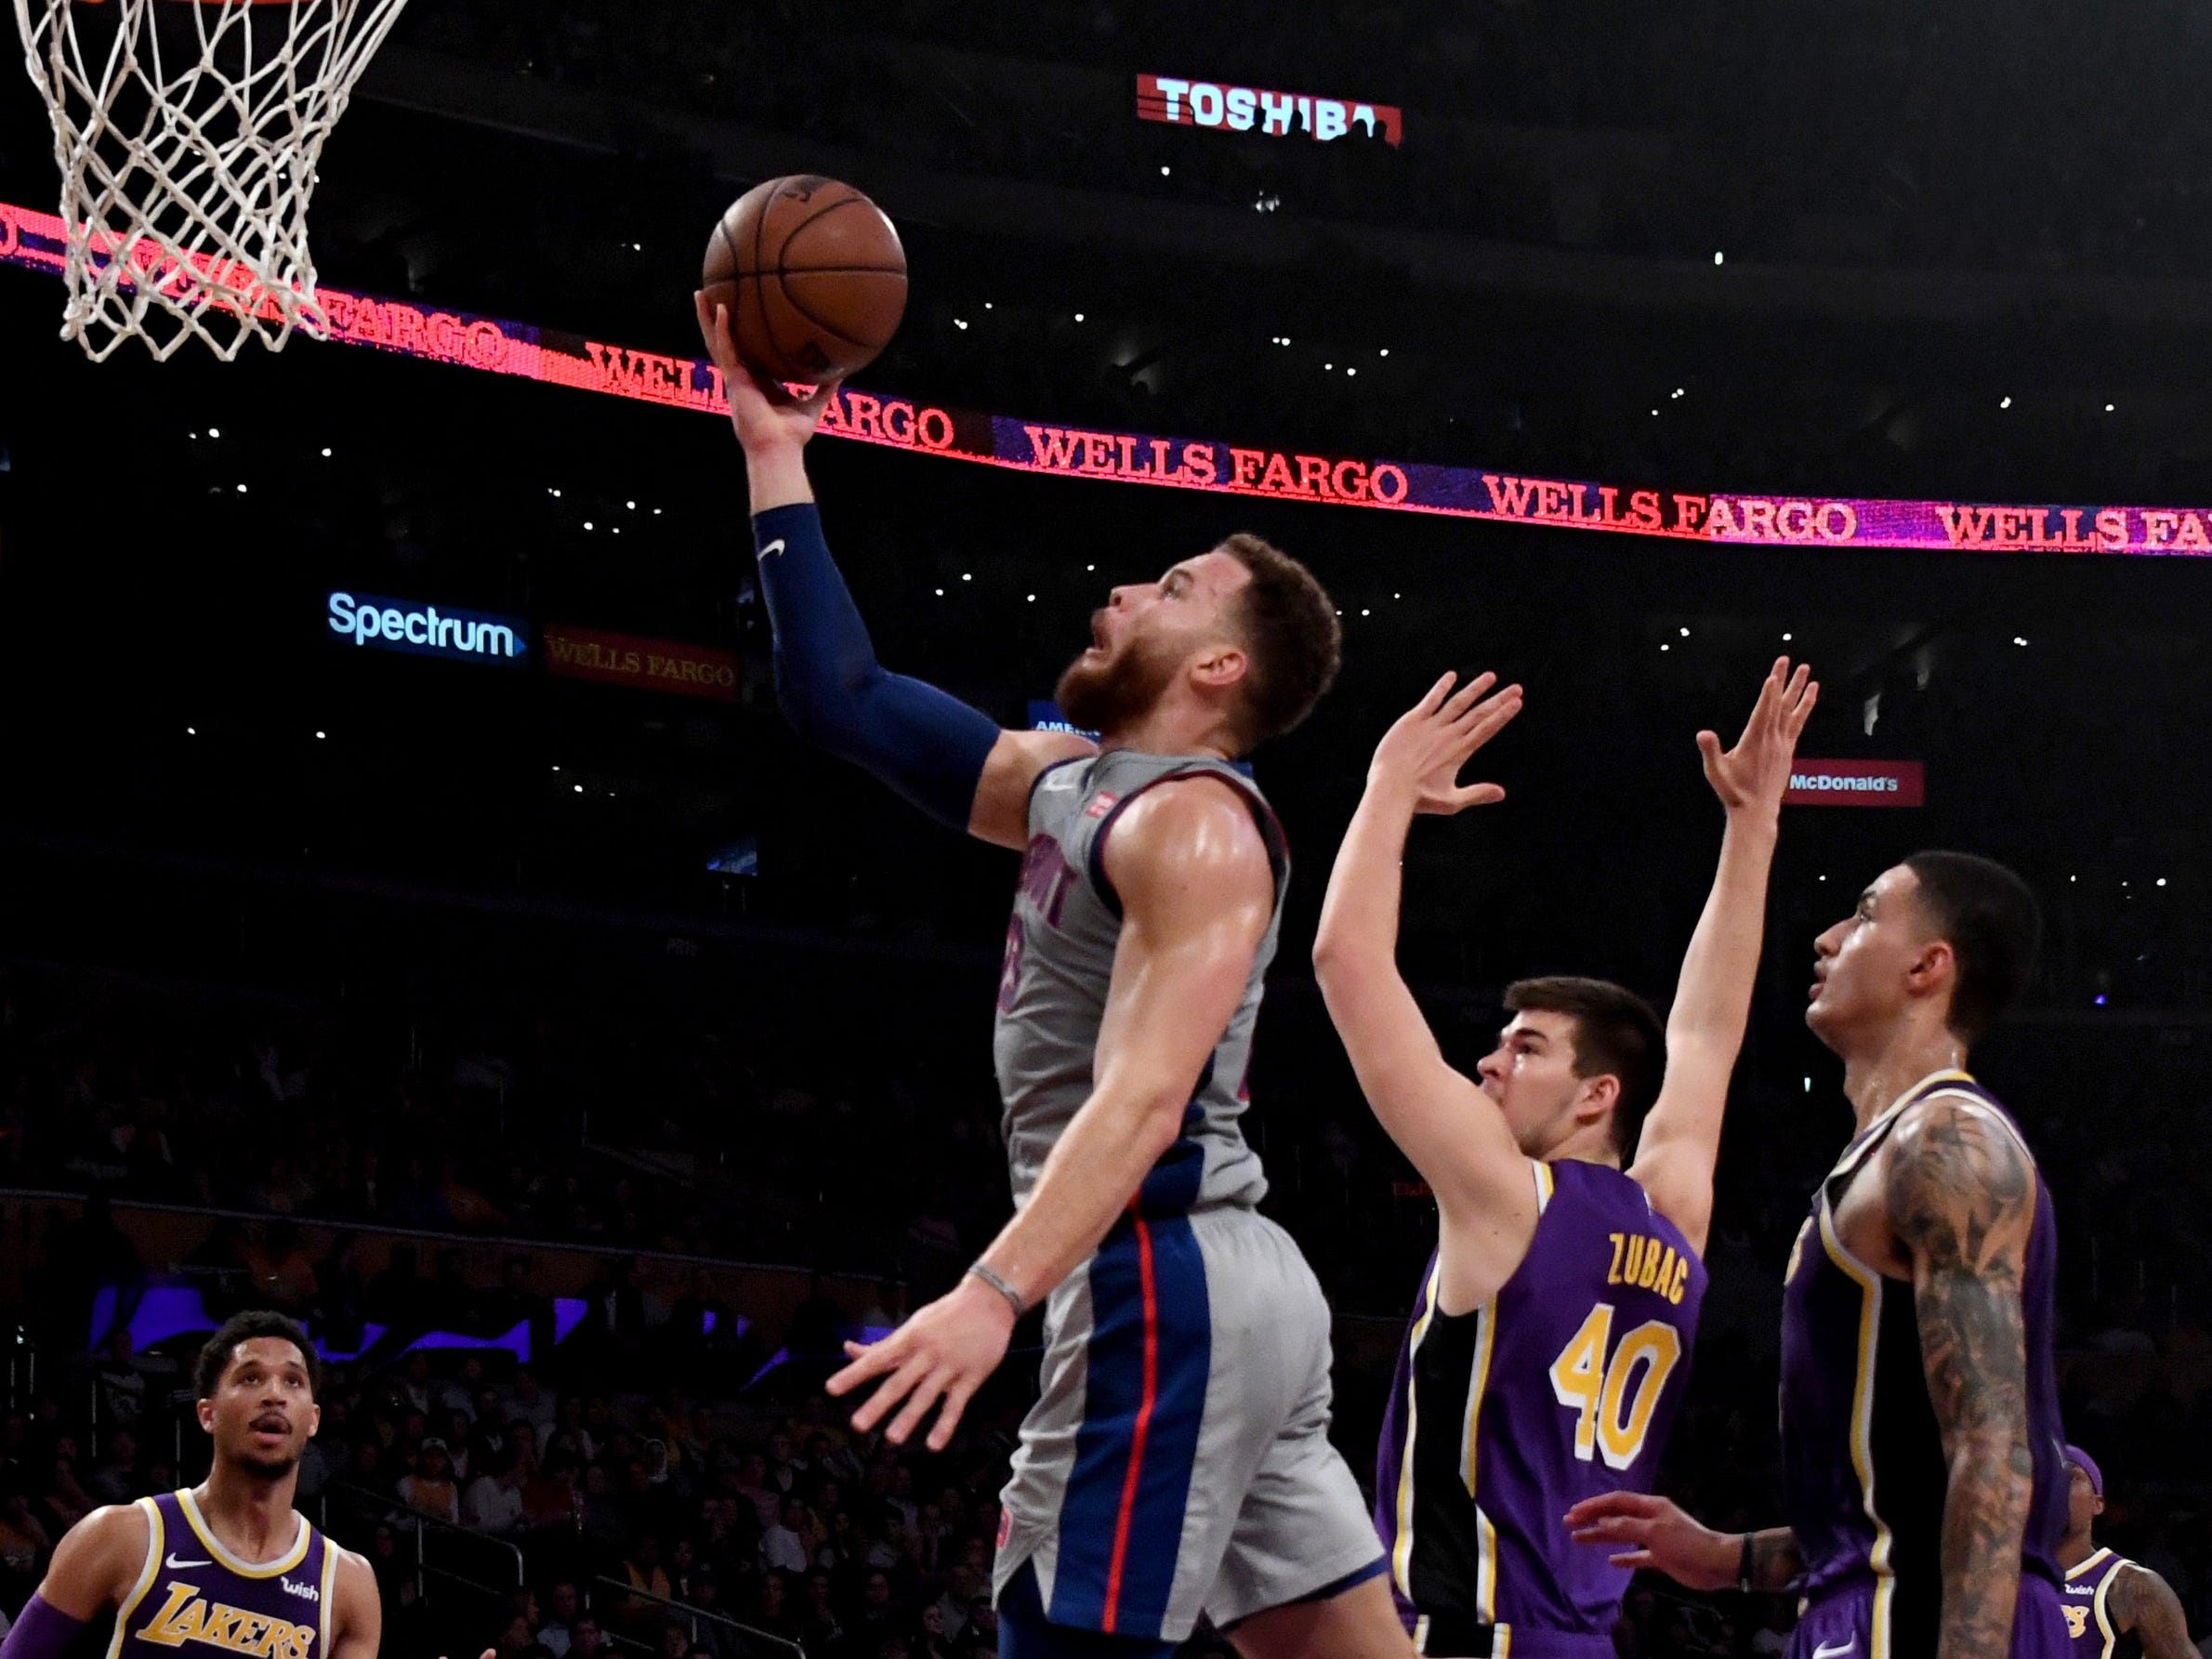 Detroit Pistons forward Blake Griffin (23) drives to the basket past Los Angeles Lakers center Ivica Zubac (40) during the first half at the Staples Center on Wednesday, Jan. 9, 2019, in Los Angeles.